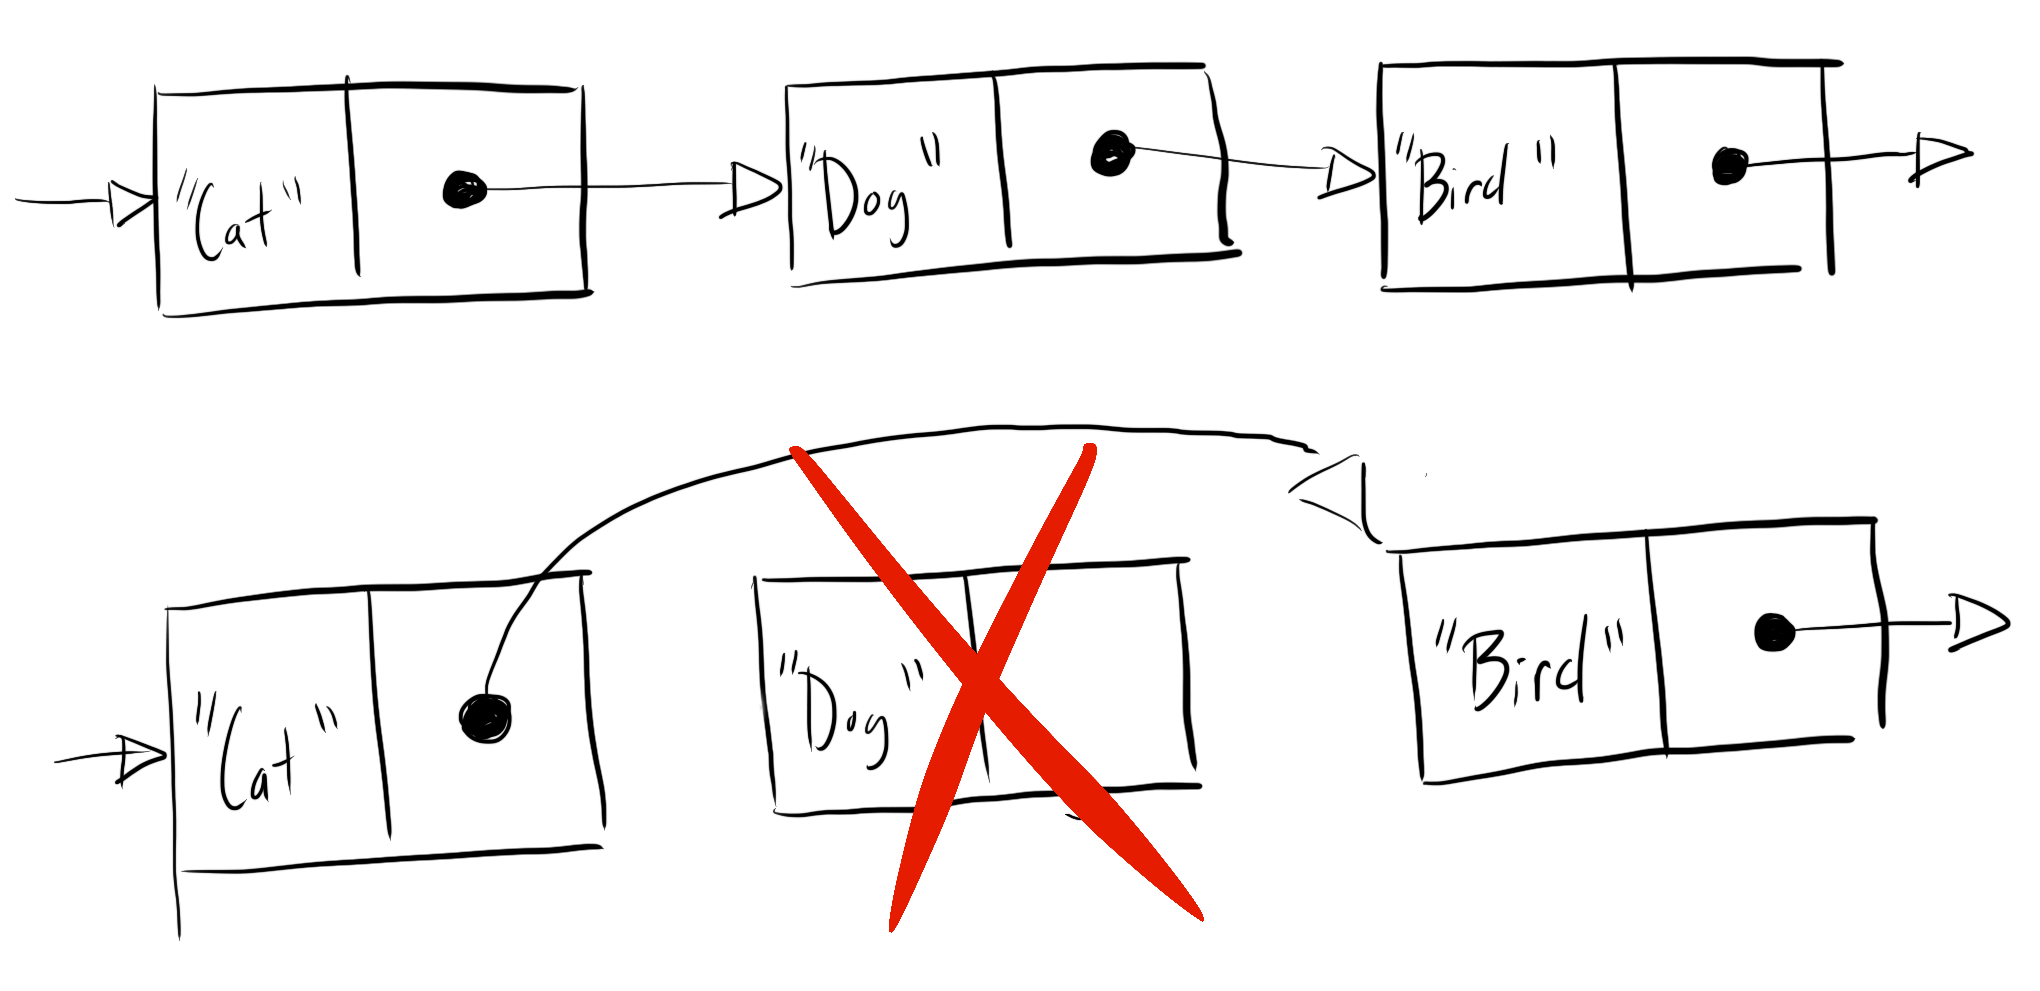 Diagram that demonstrates how linked lists remove a node from a linked list by moving pointer references